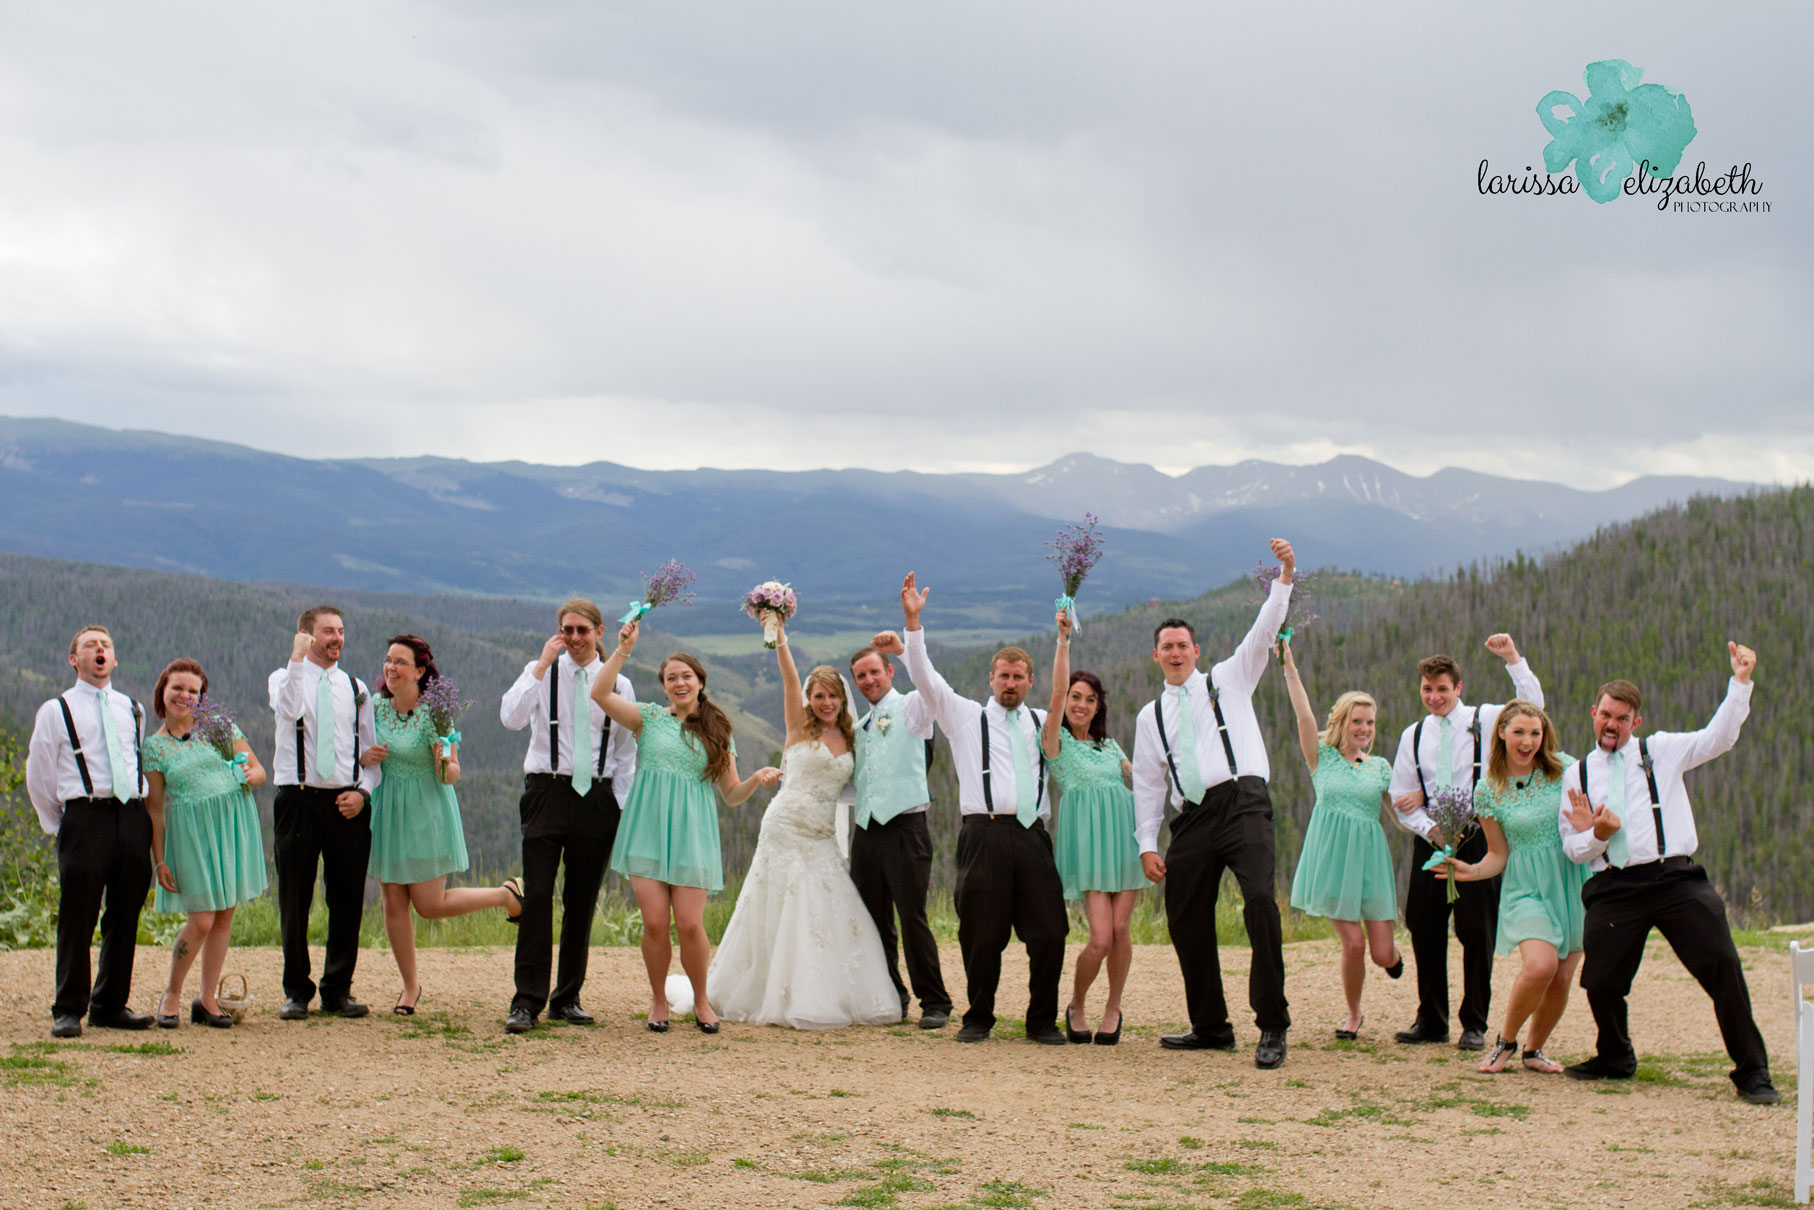 Grandby-Ranch-Wedding-11